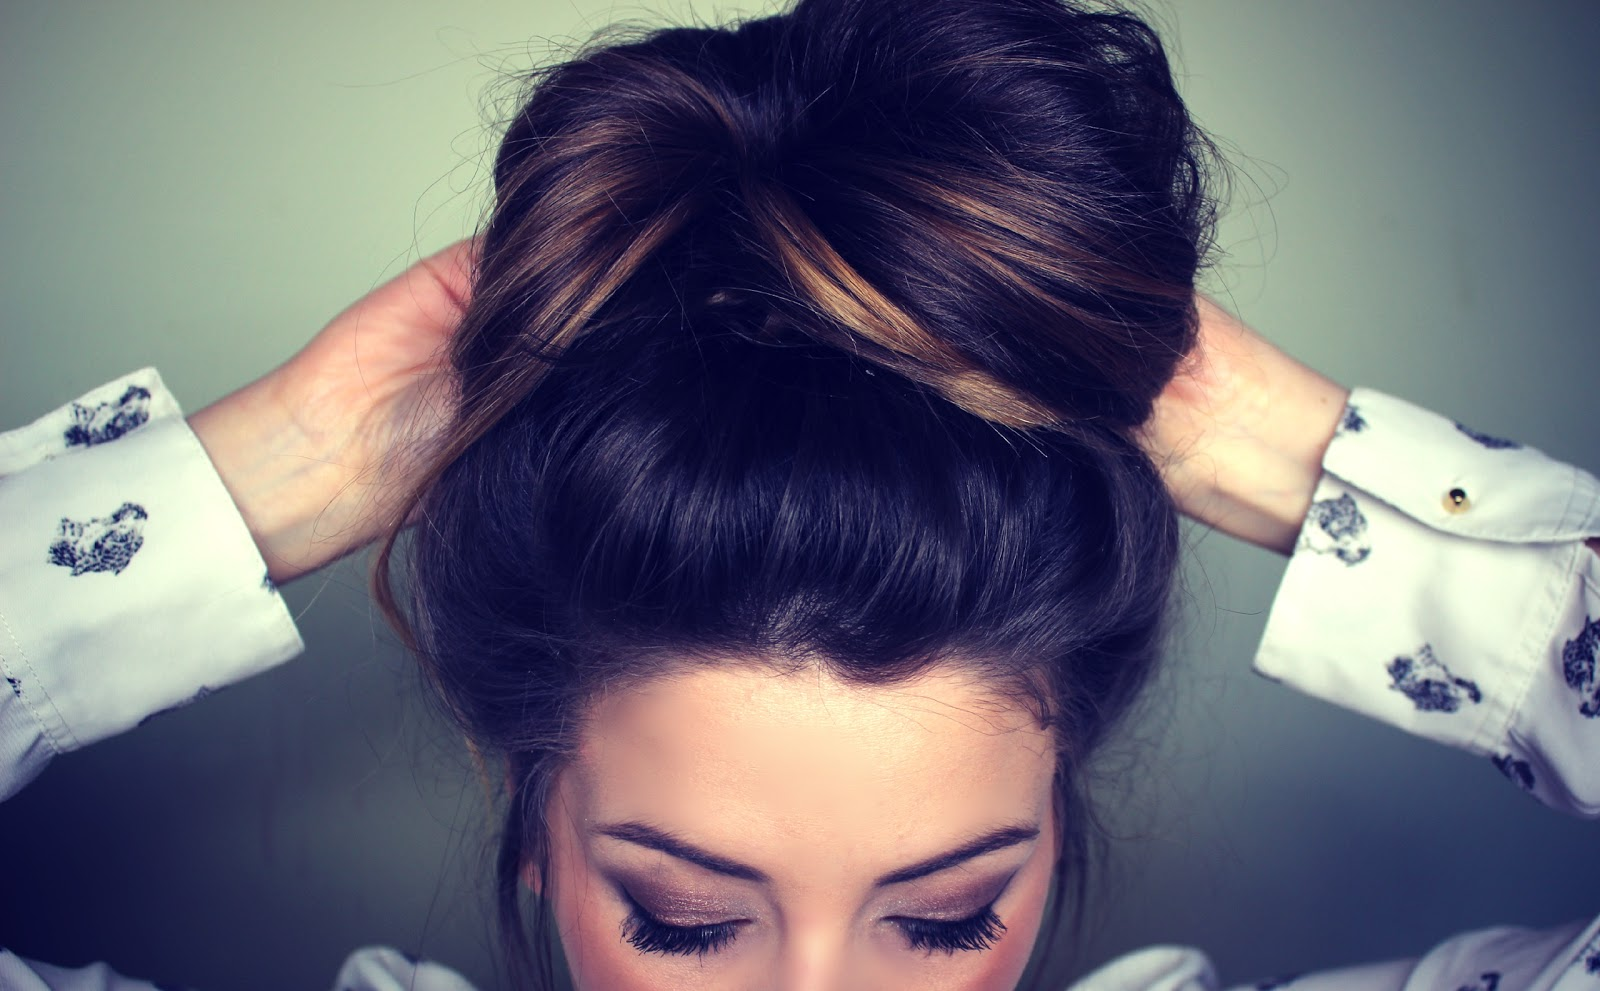 Zoella Hairstyles For School : Friday, 24 August 2012